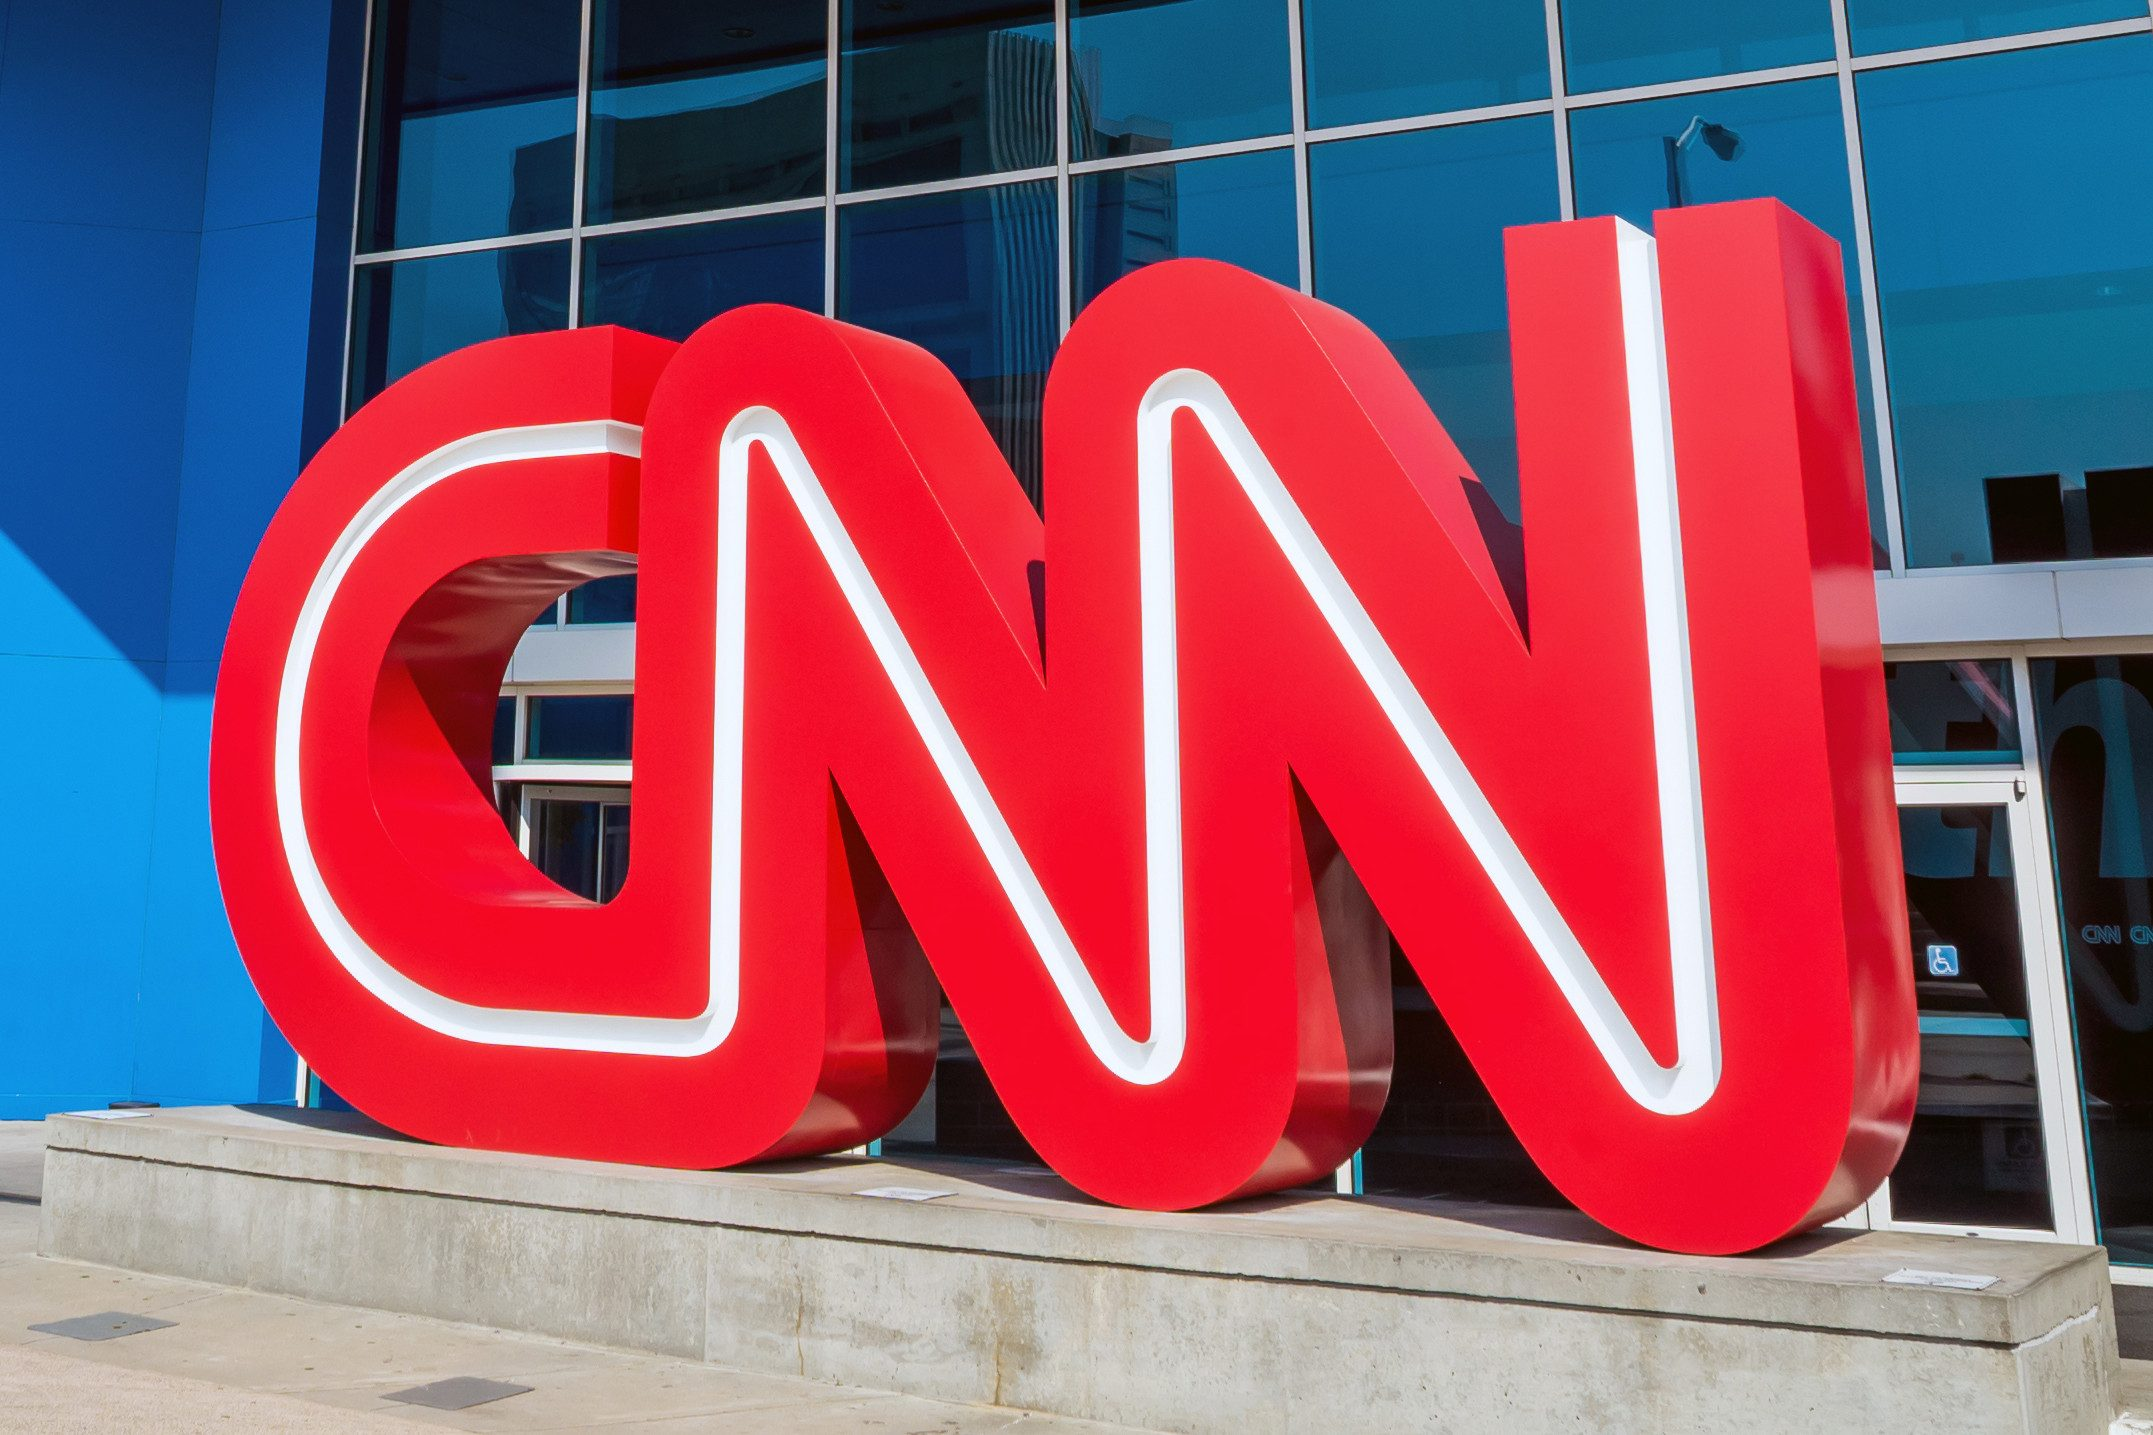 CNN will Continue to Promote Ha Noi  to the Global Public